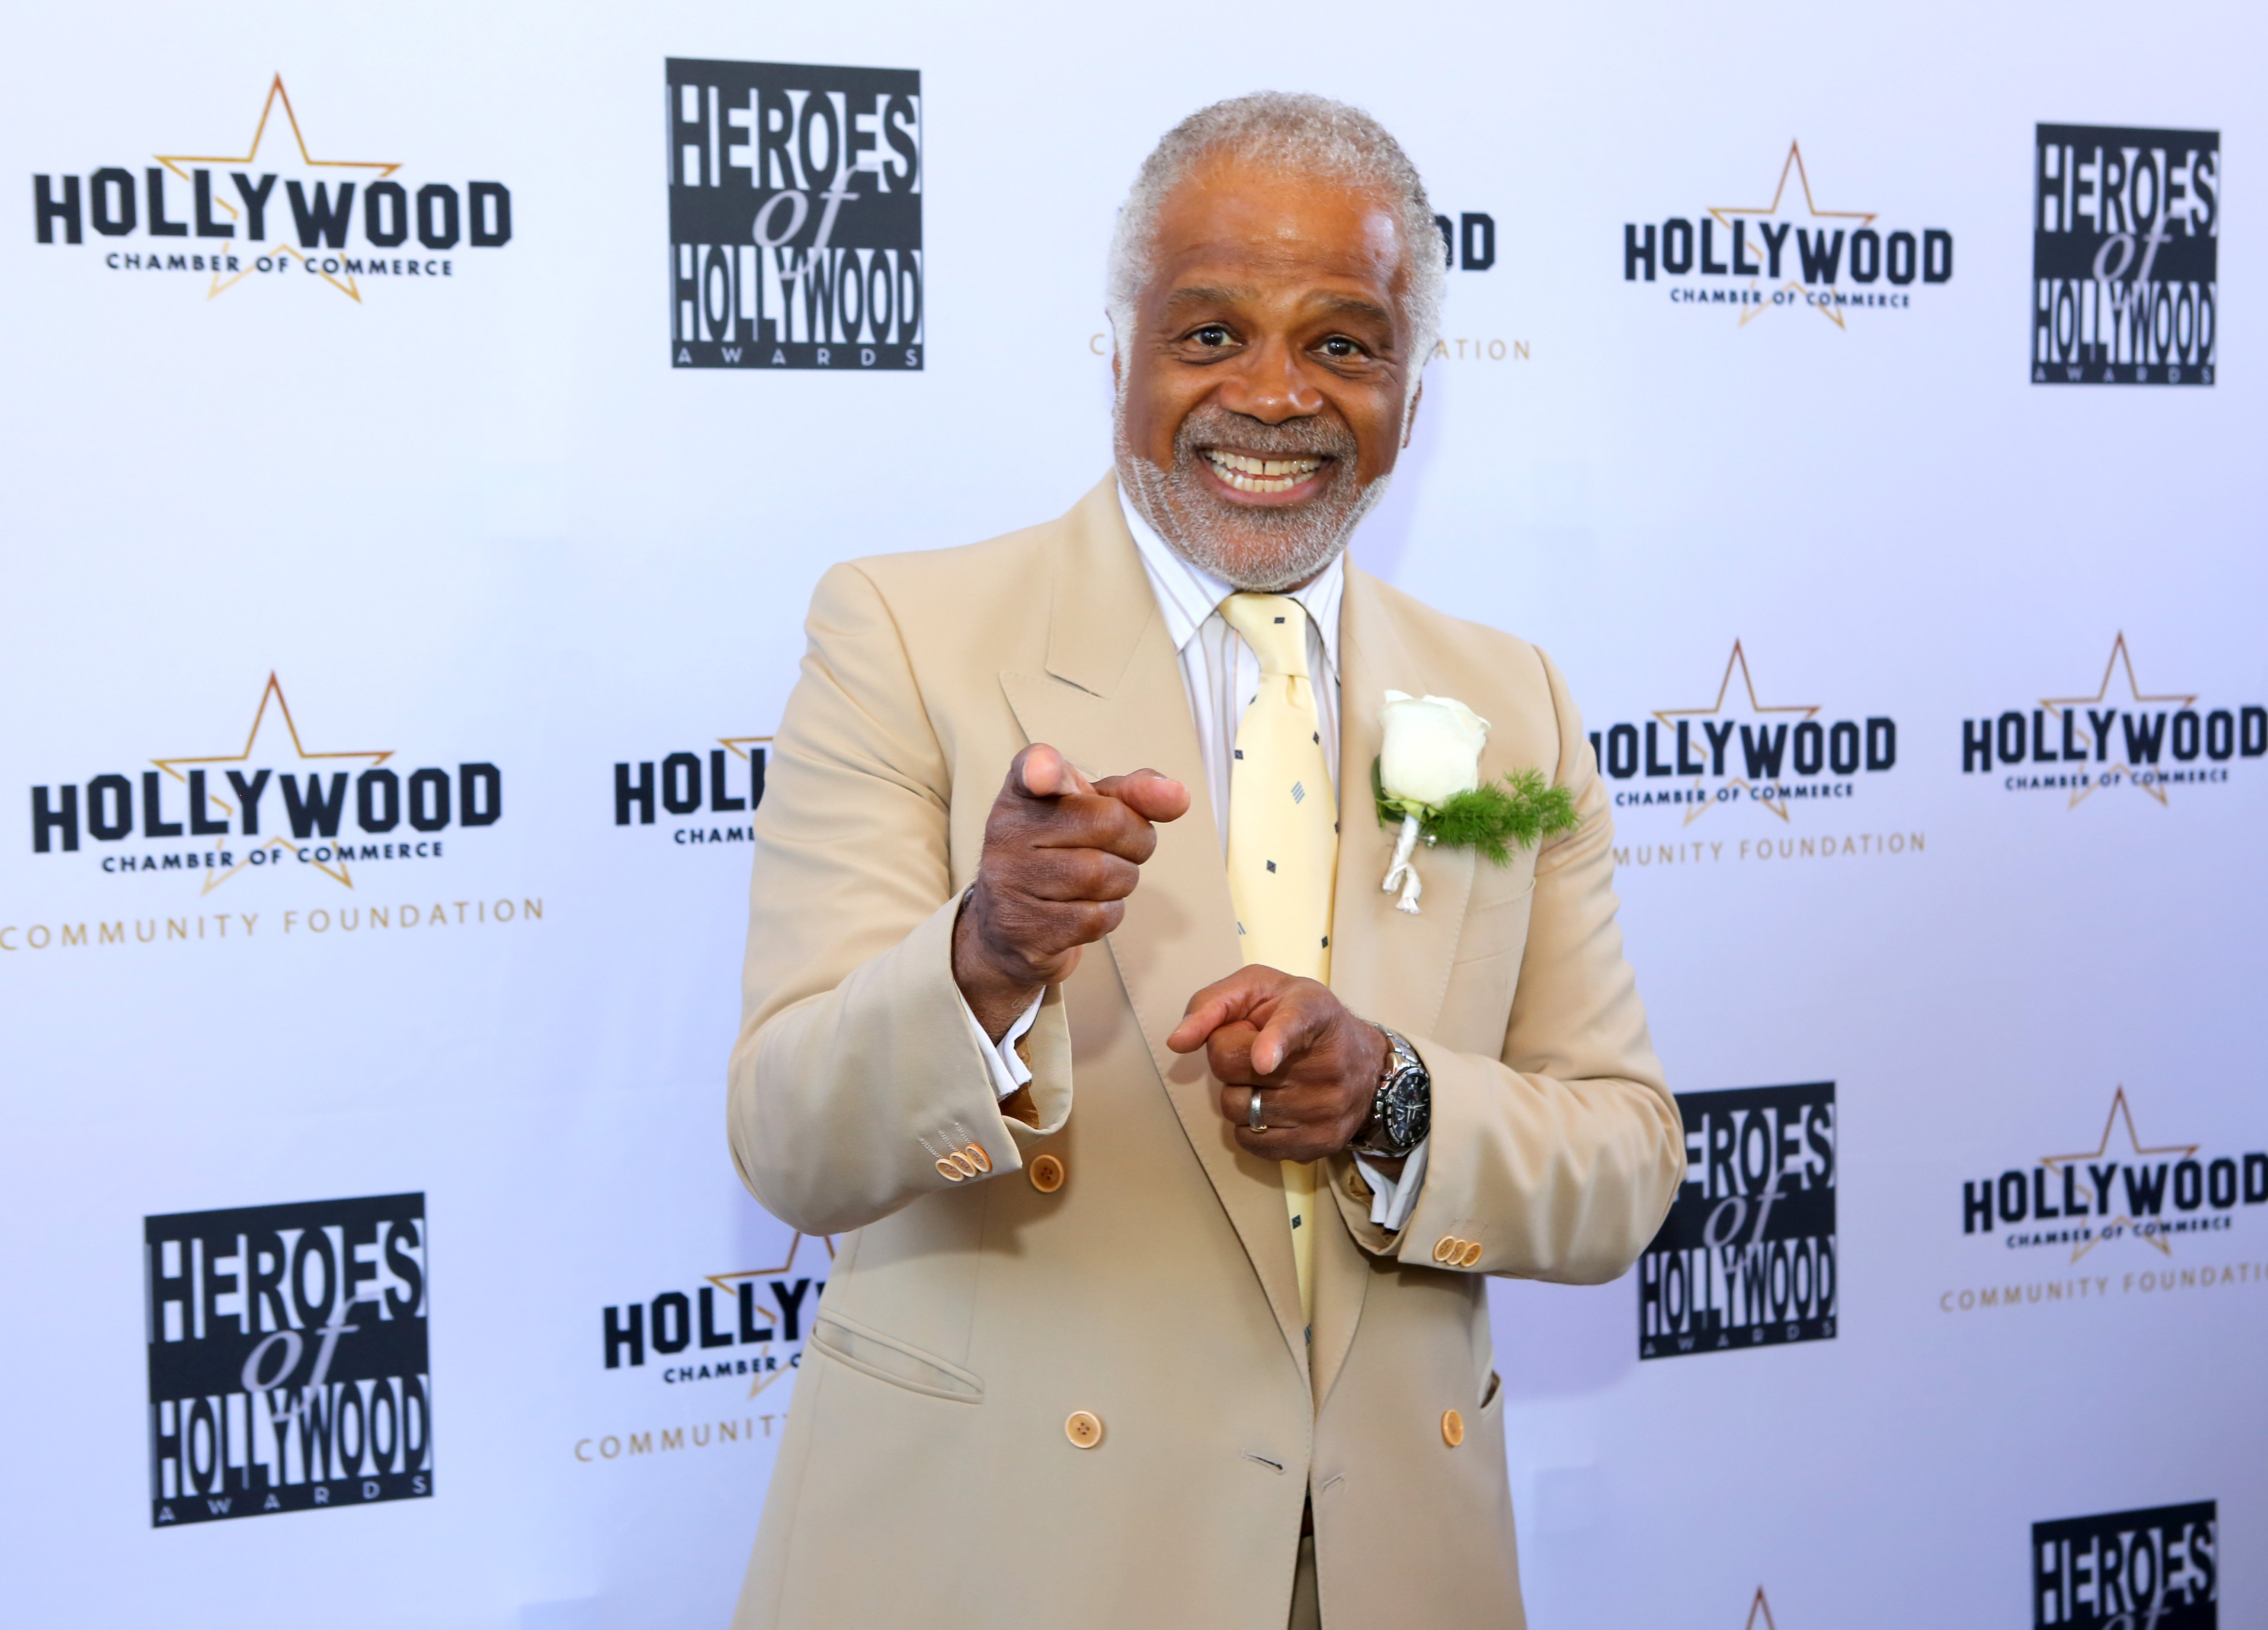 Ted Lange attend The Heroes of Hollywood Awards Luncheon at the Taglyan Cultural Complex on June 06, 2019 | Photo: Getty Images